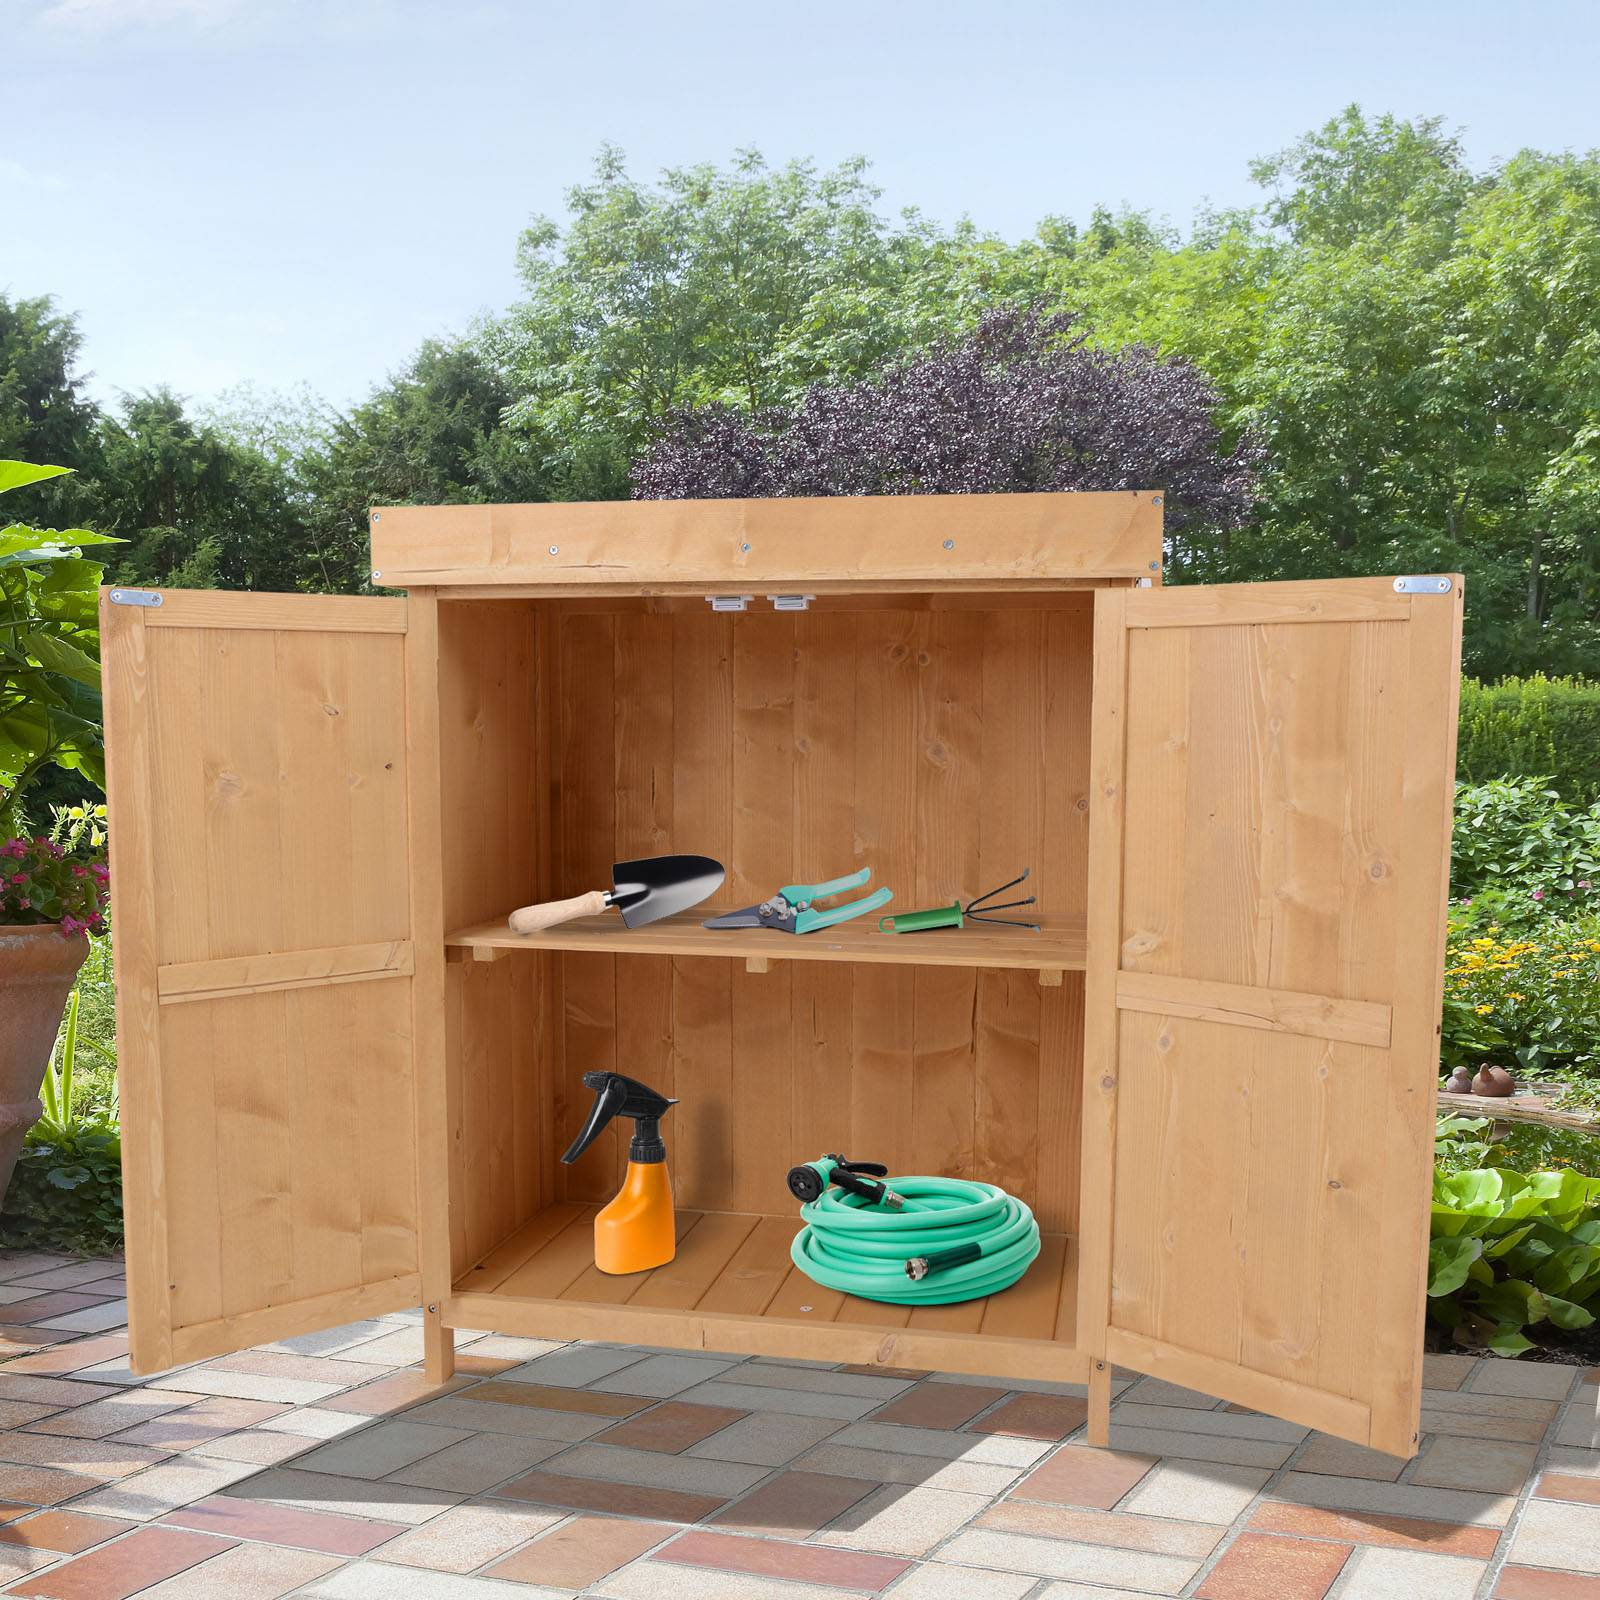 Outsunny Outdoor Garden Storage Shed, Cedarwood-Burlywood Colour